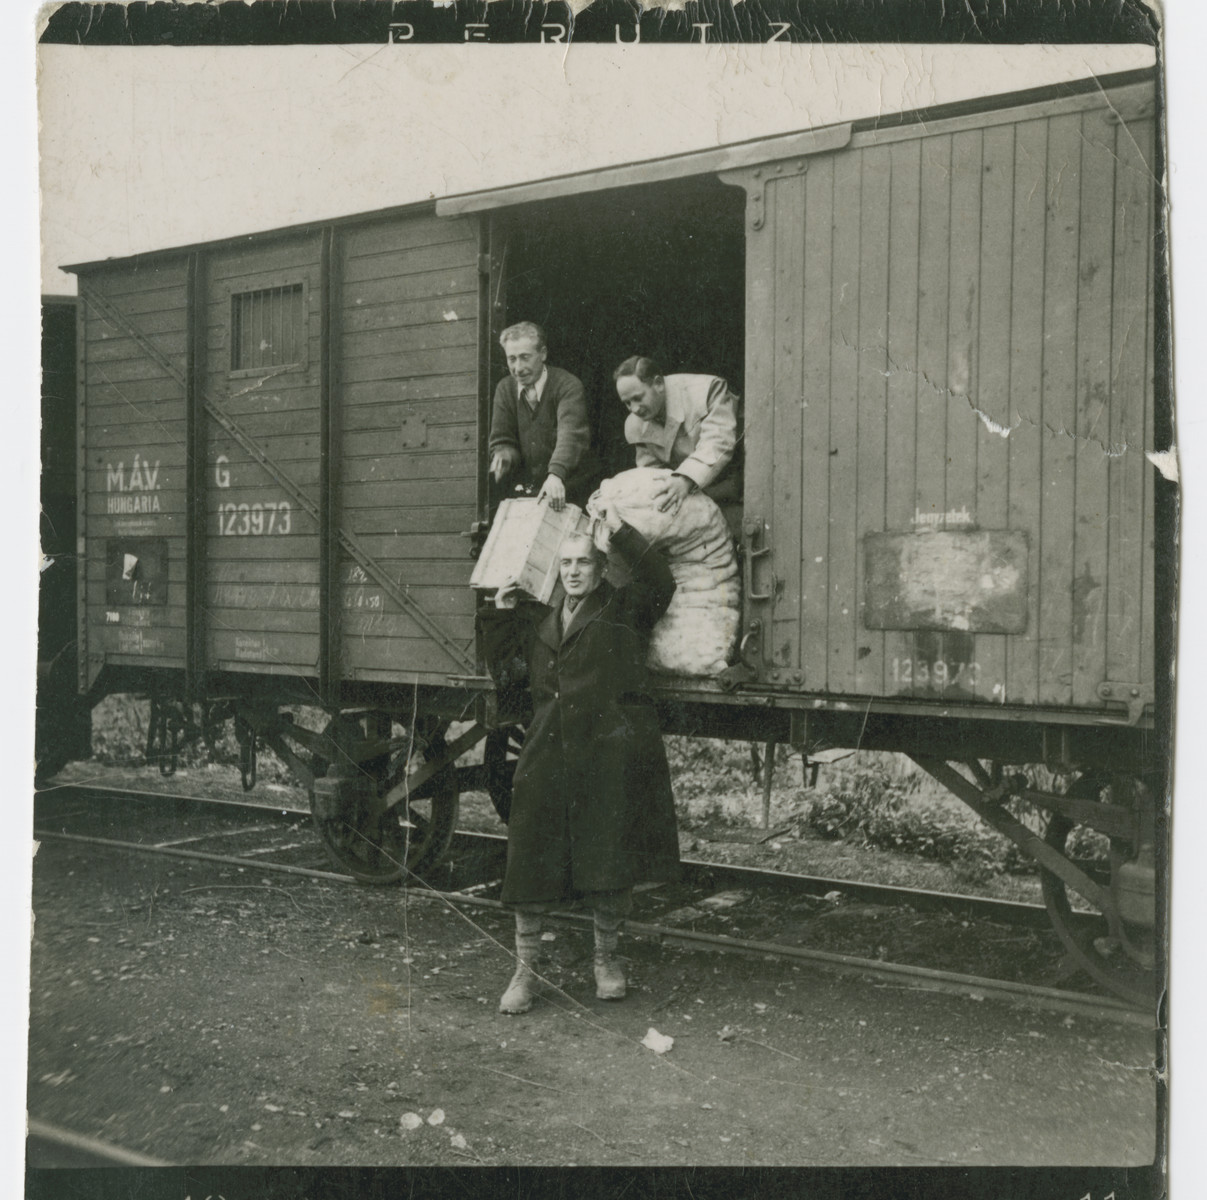 Hungarian Jews load or unload cargo into a cattle car while awaiting deportation to a forced labor battalion.  Among those pictured is Imre Winkler.